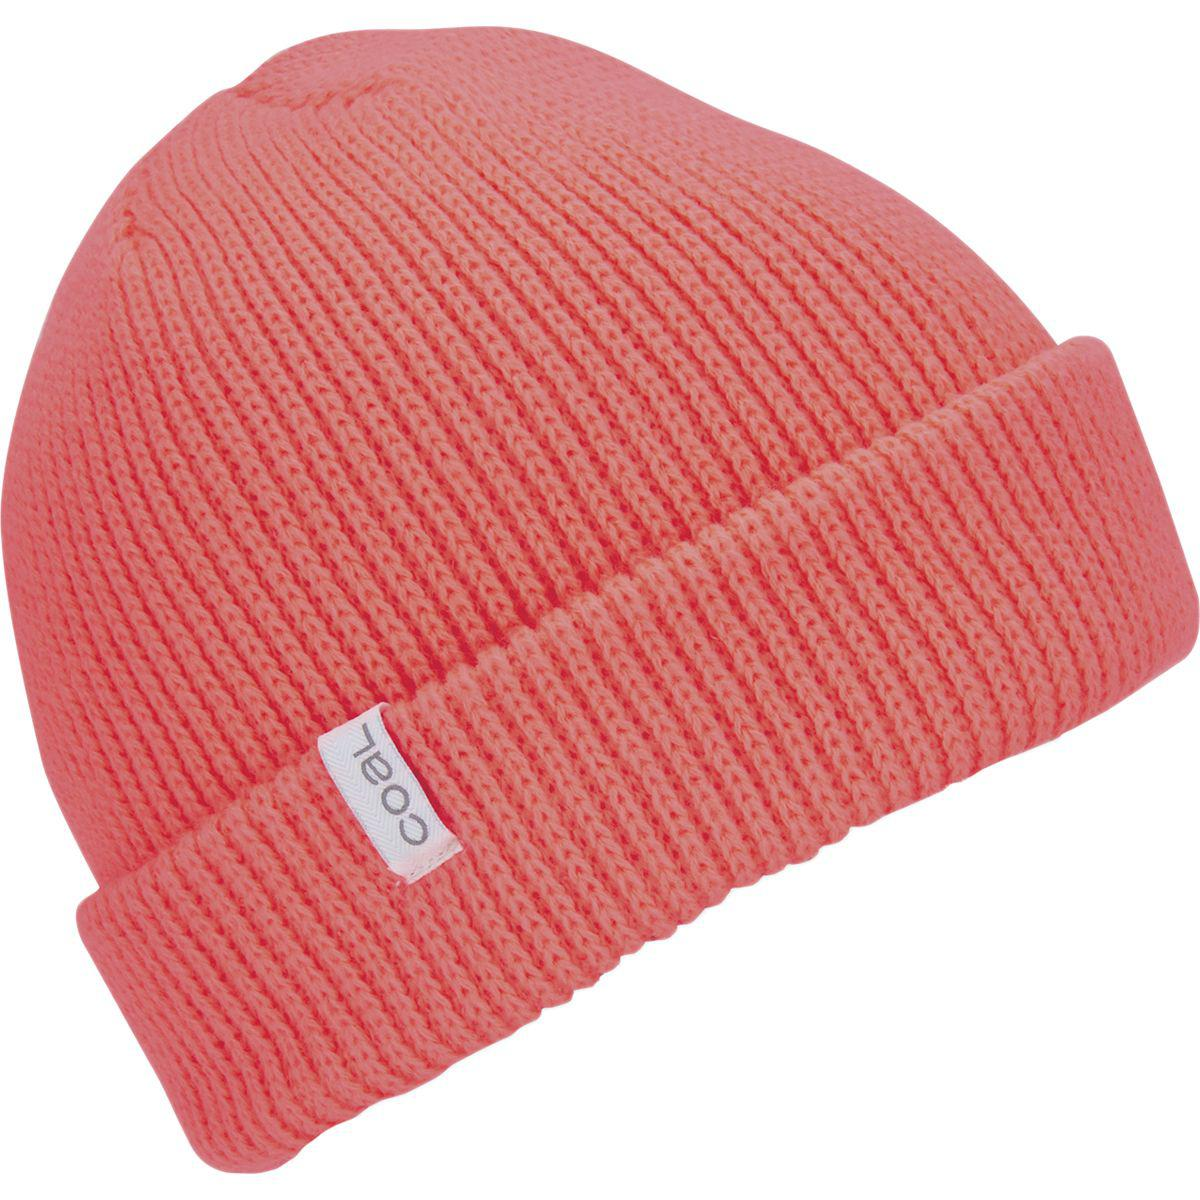 85c1bfb495d Lyst - Coal Frena Solid Beanie in Red for Men